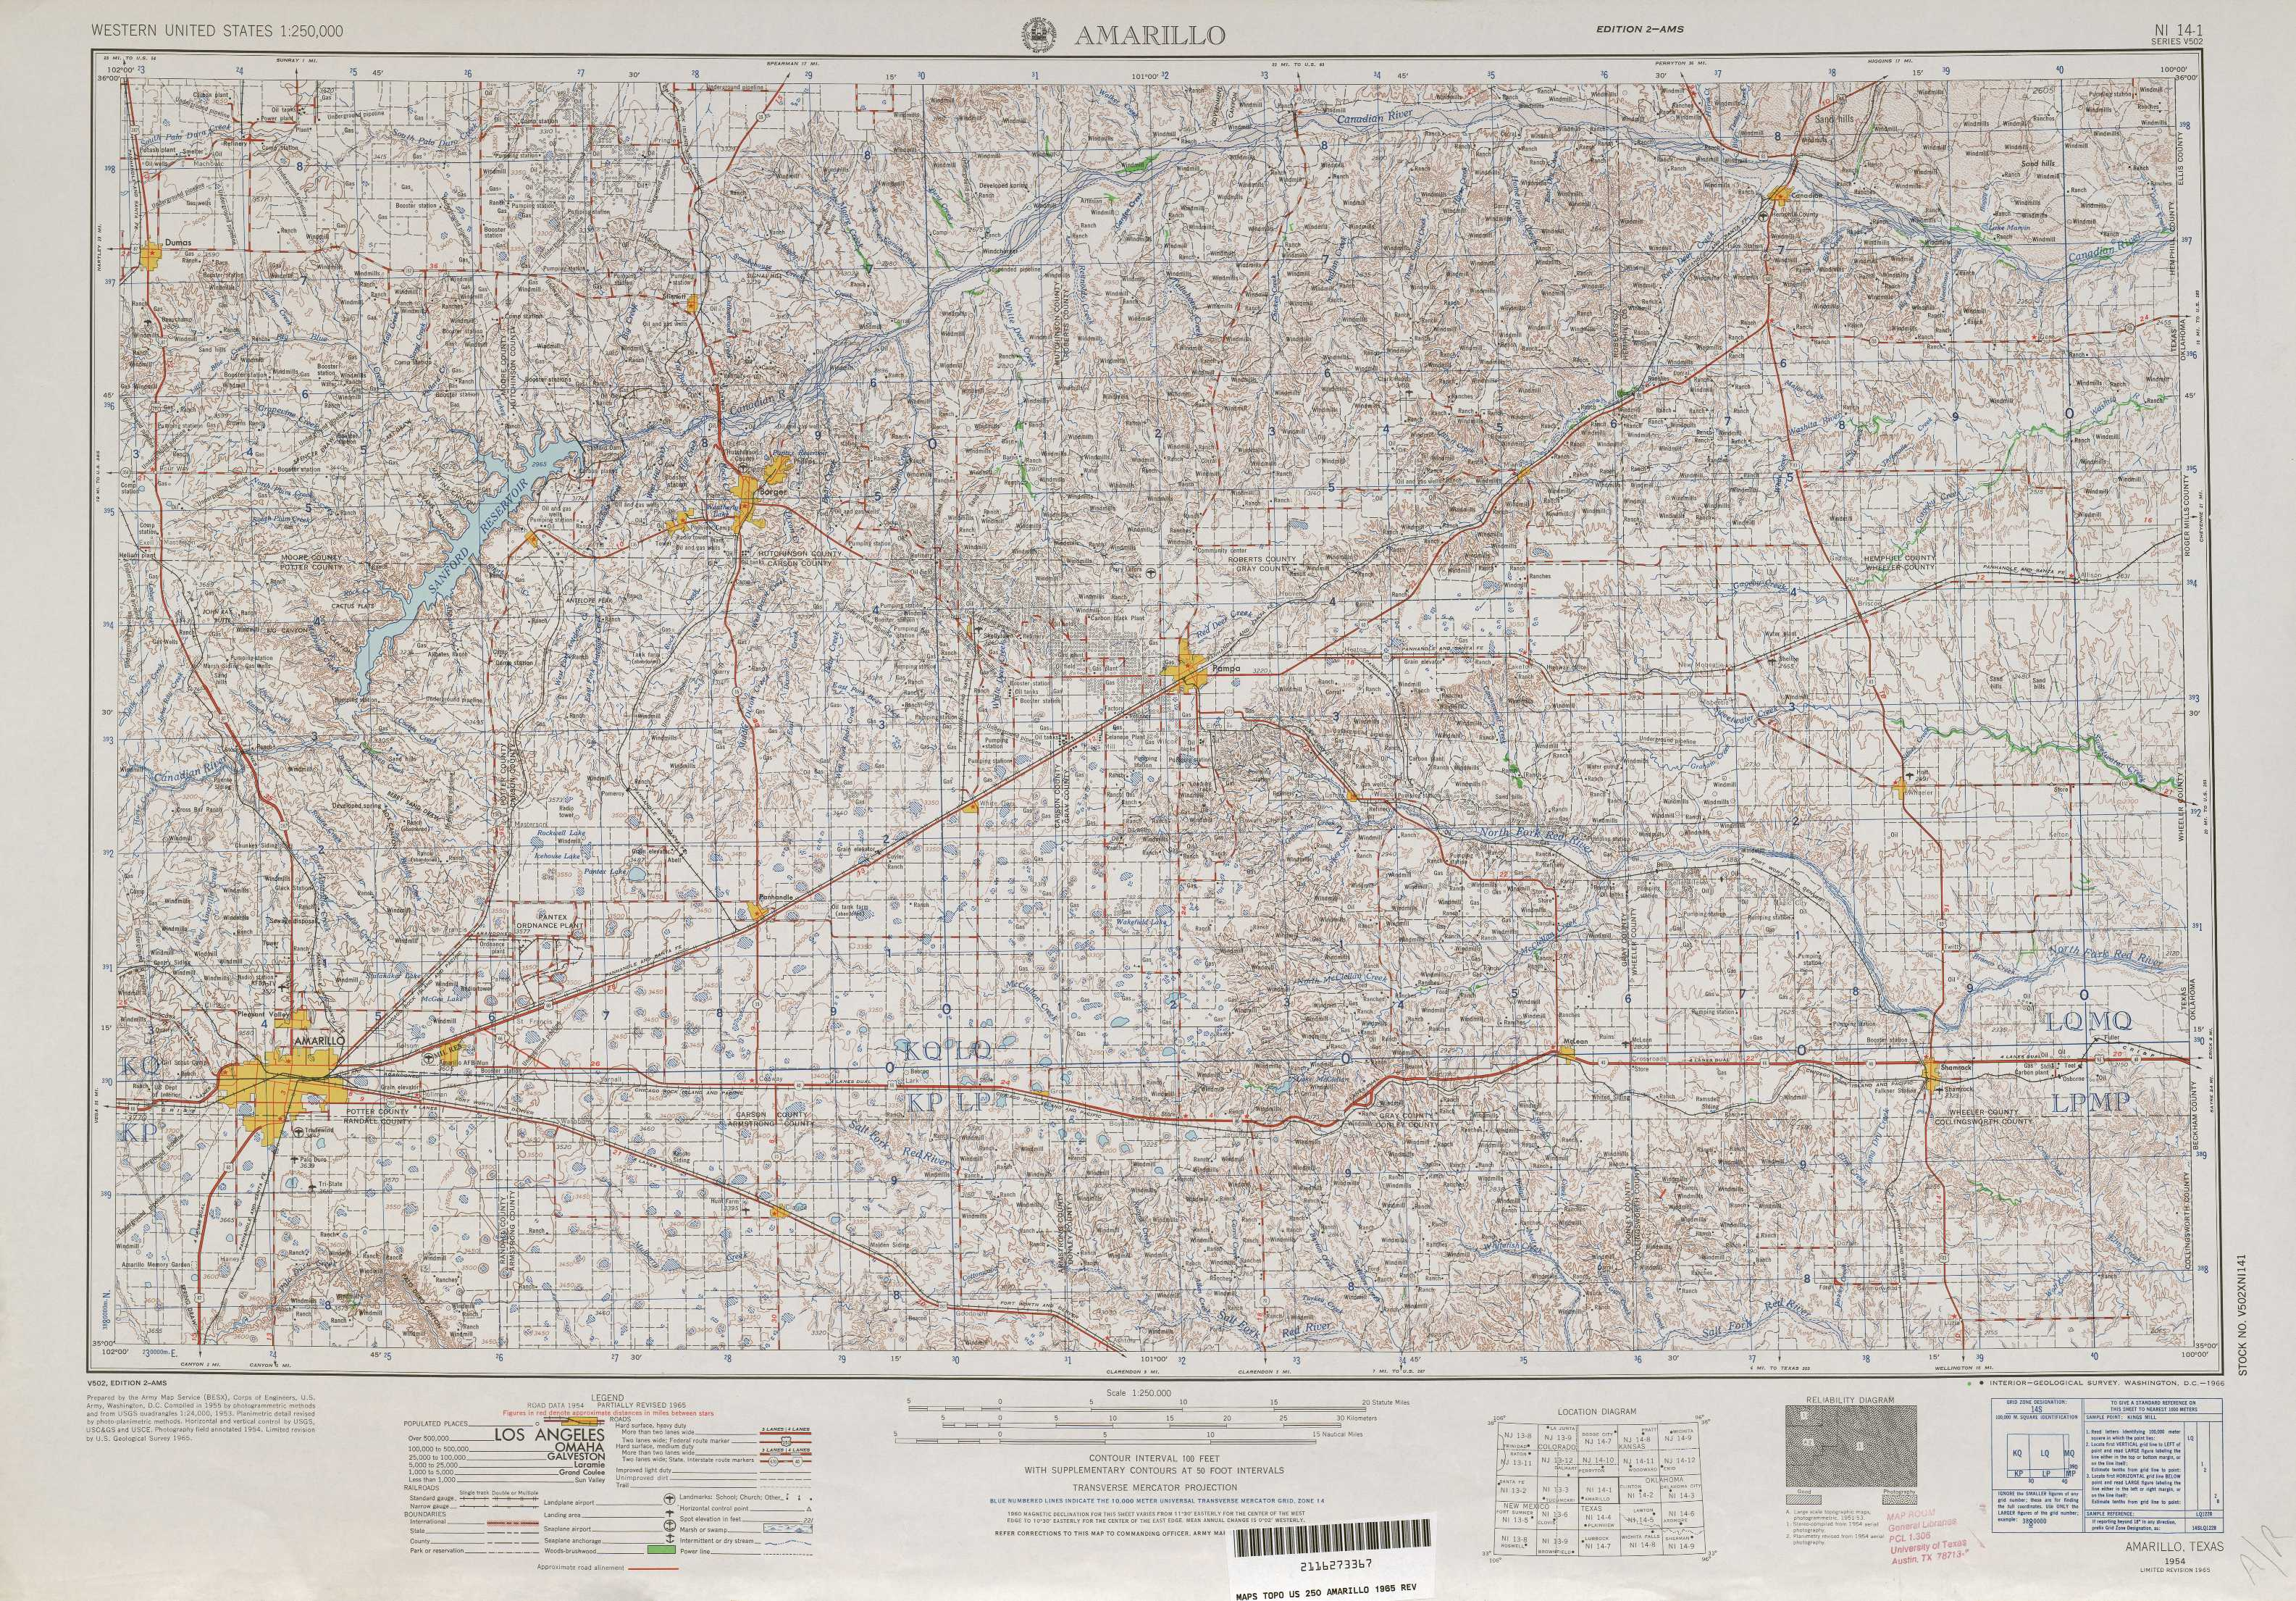 Amarillo Topographic Maps TX USGS Topo Quad A At - Map of amarillo texas